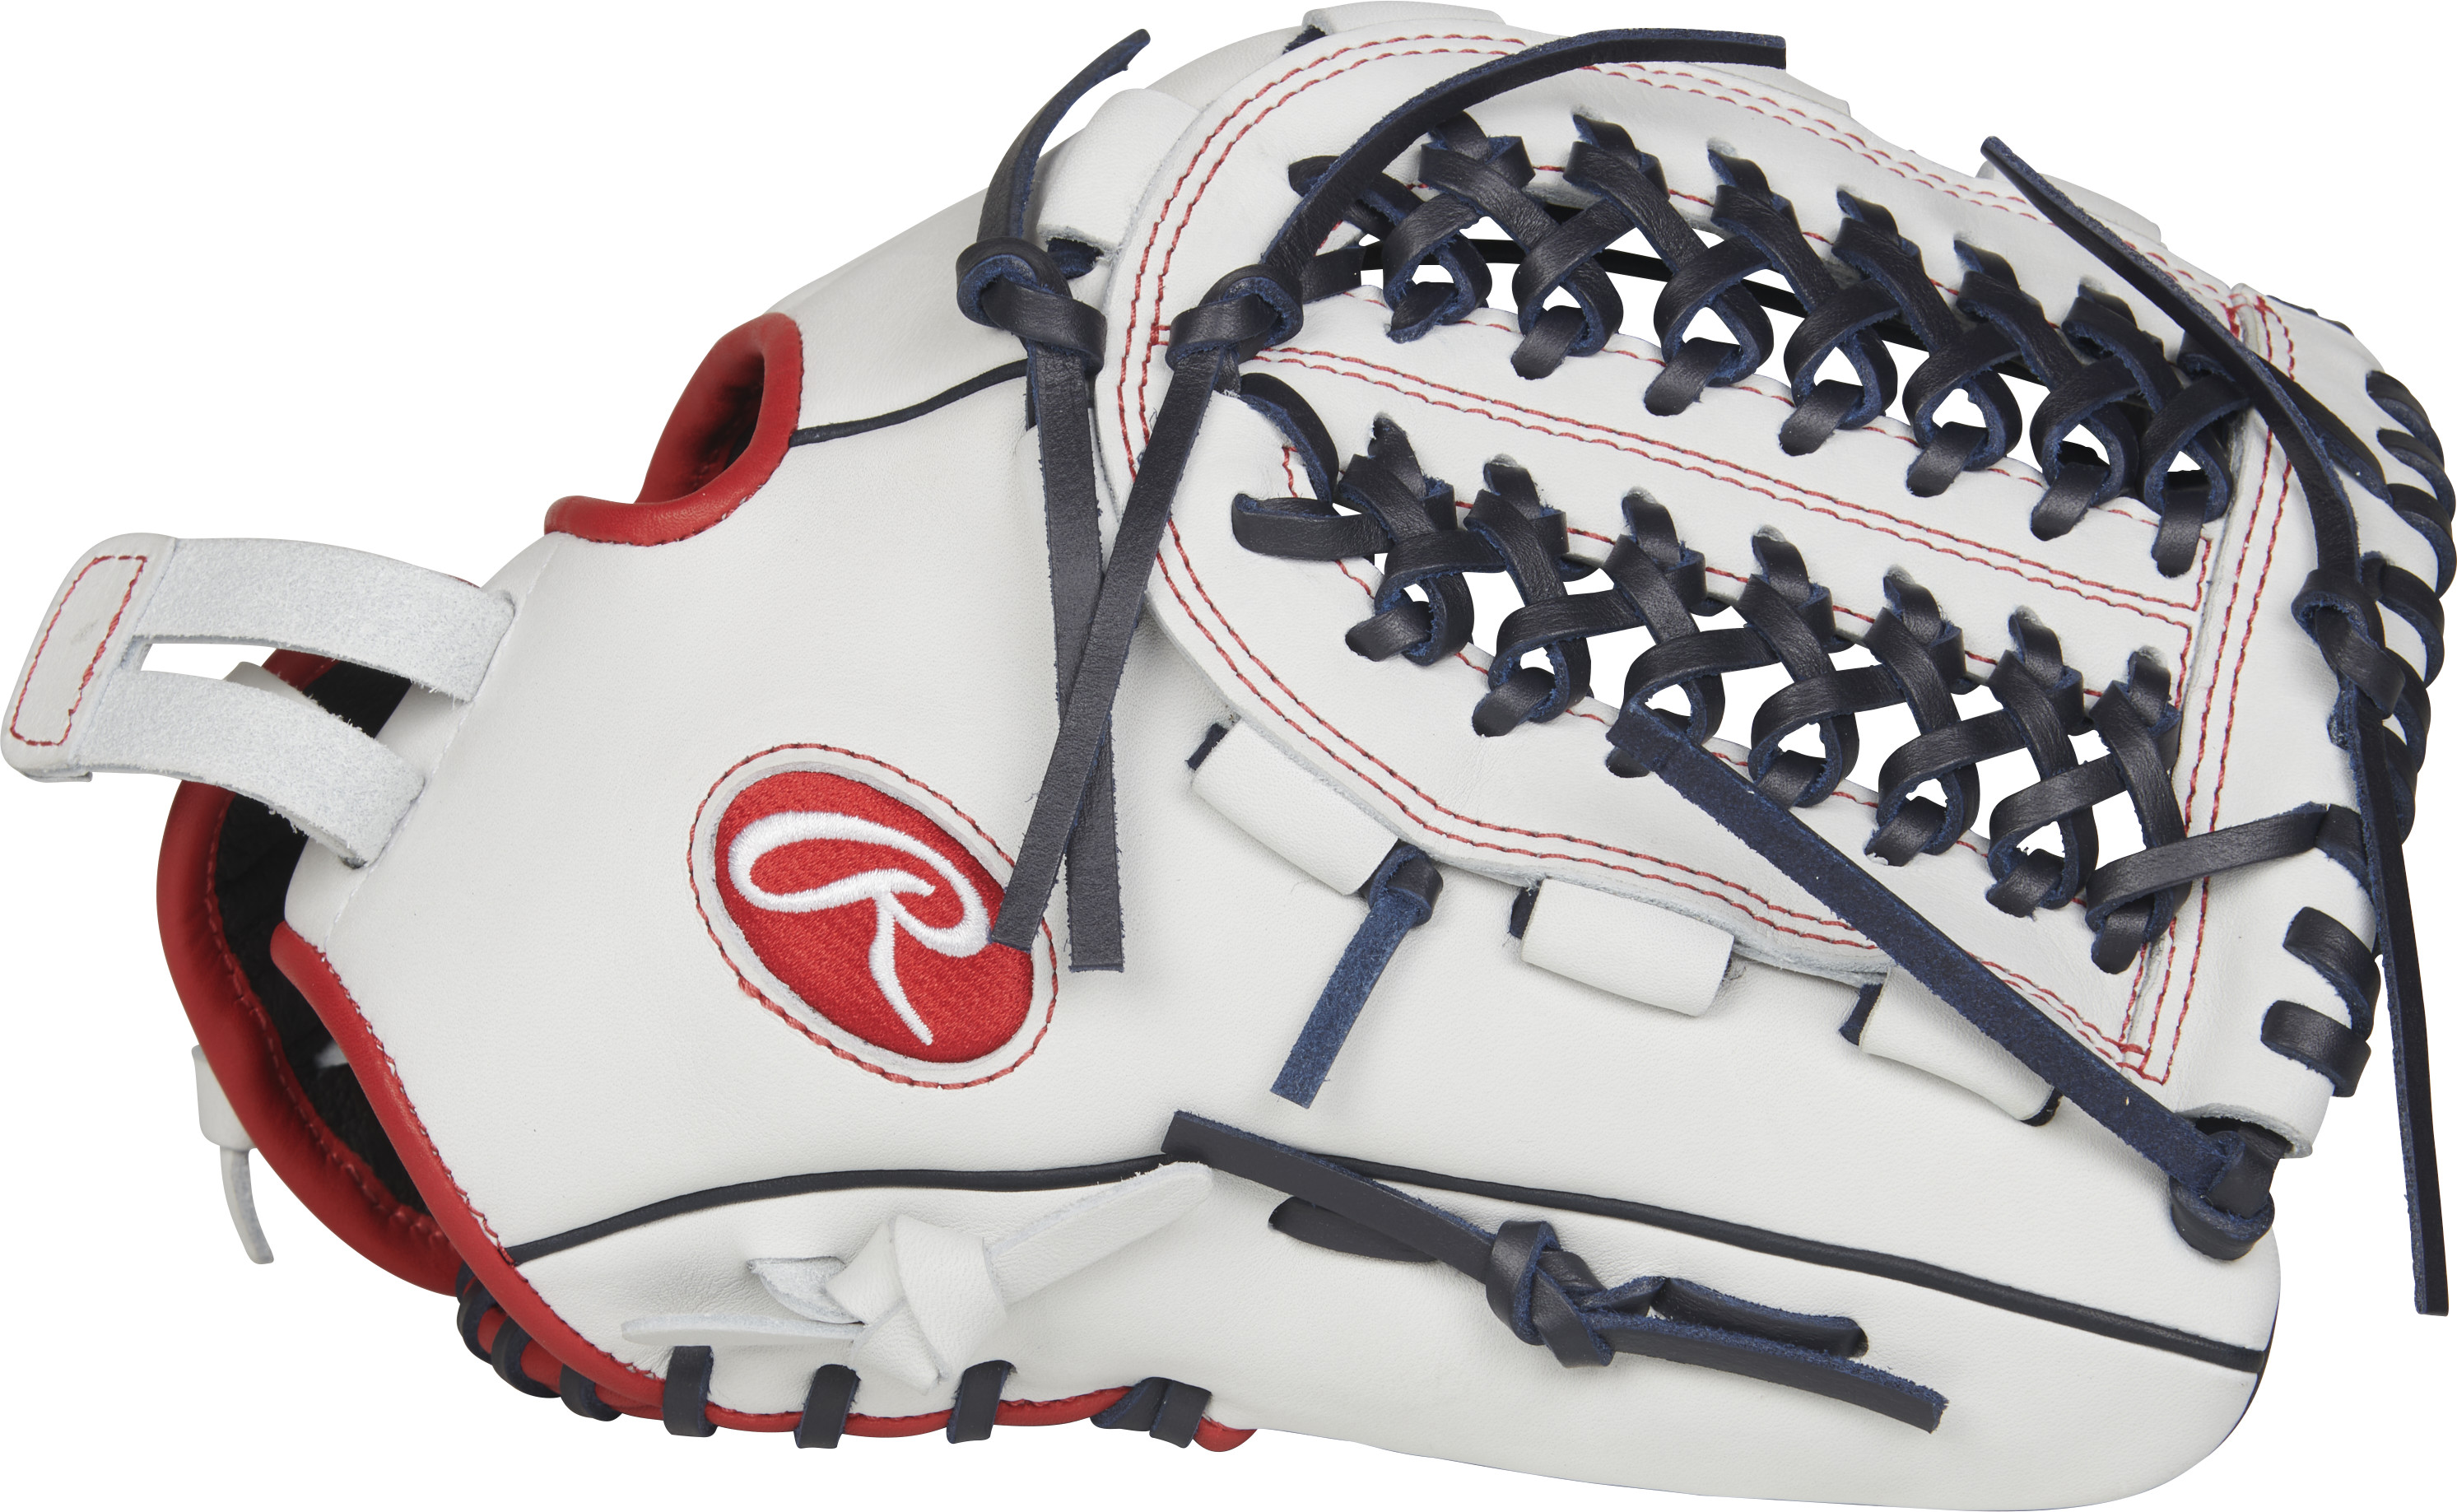 http://www.bestbatdeals.com/images/gloves/rawlings/RLA125FS-15WNS-3.jpg